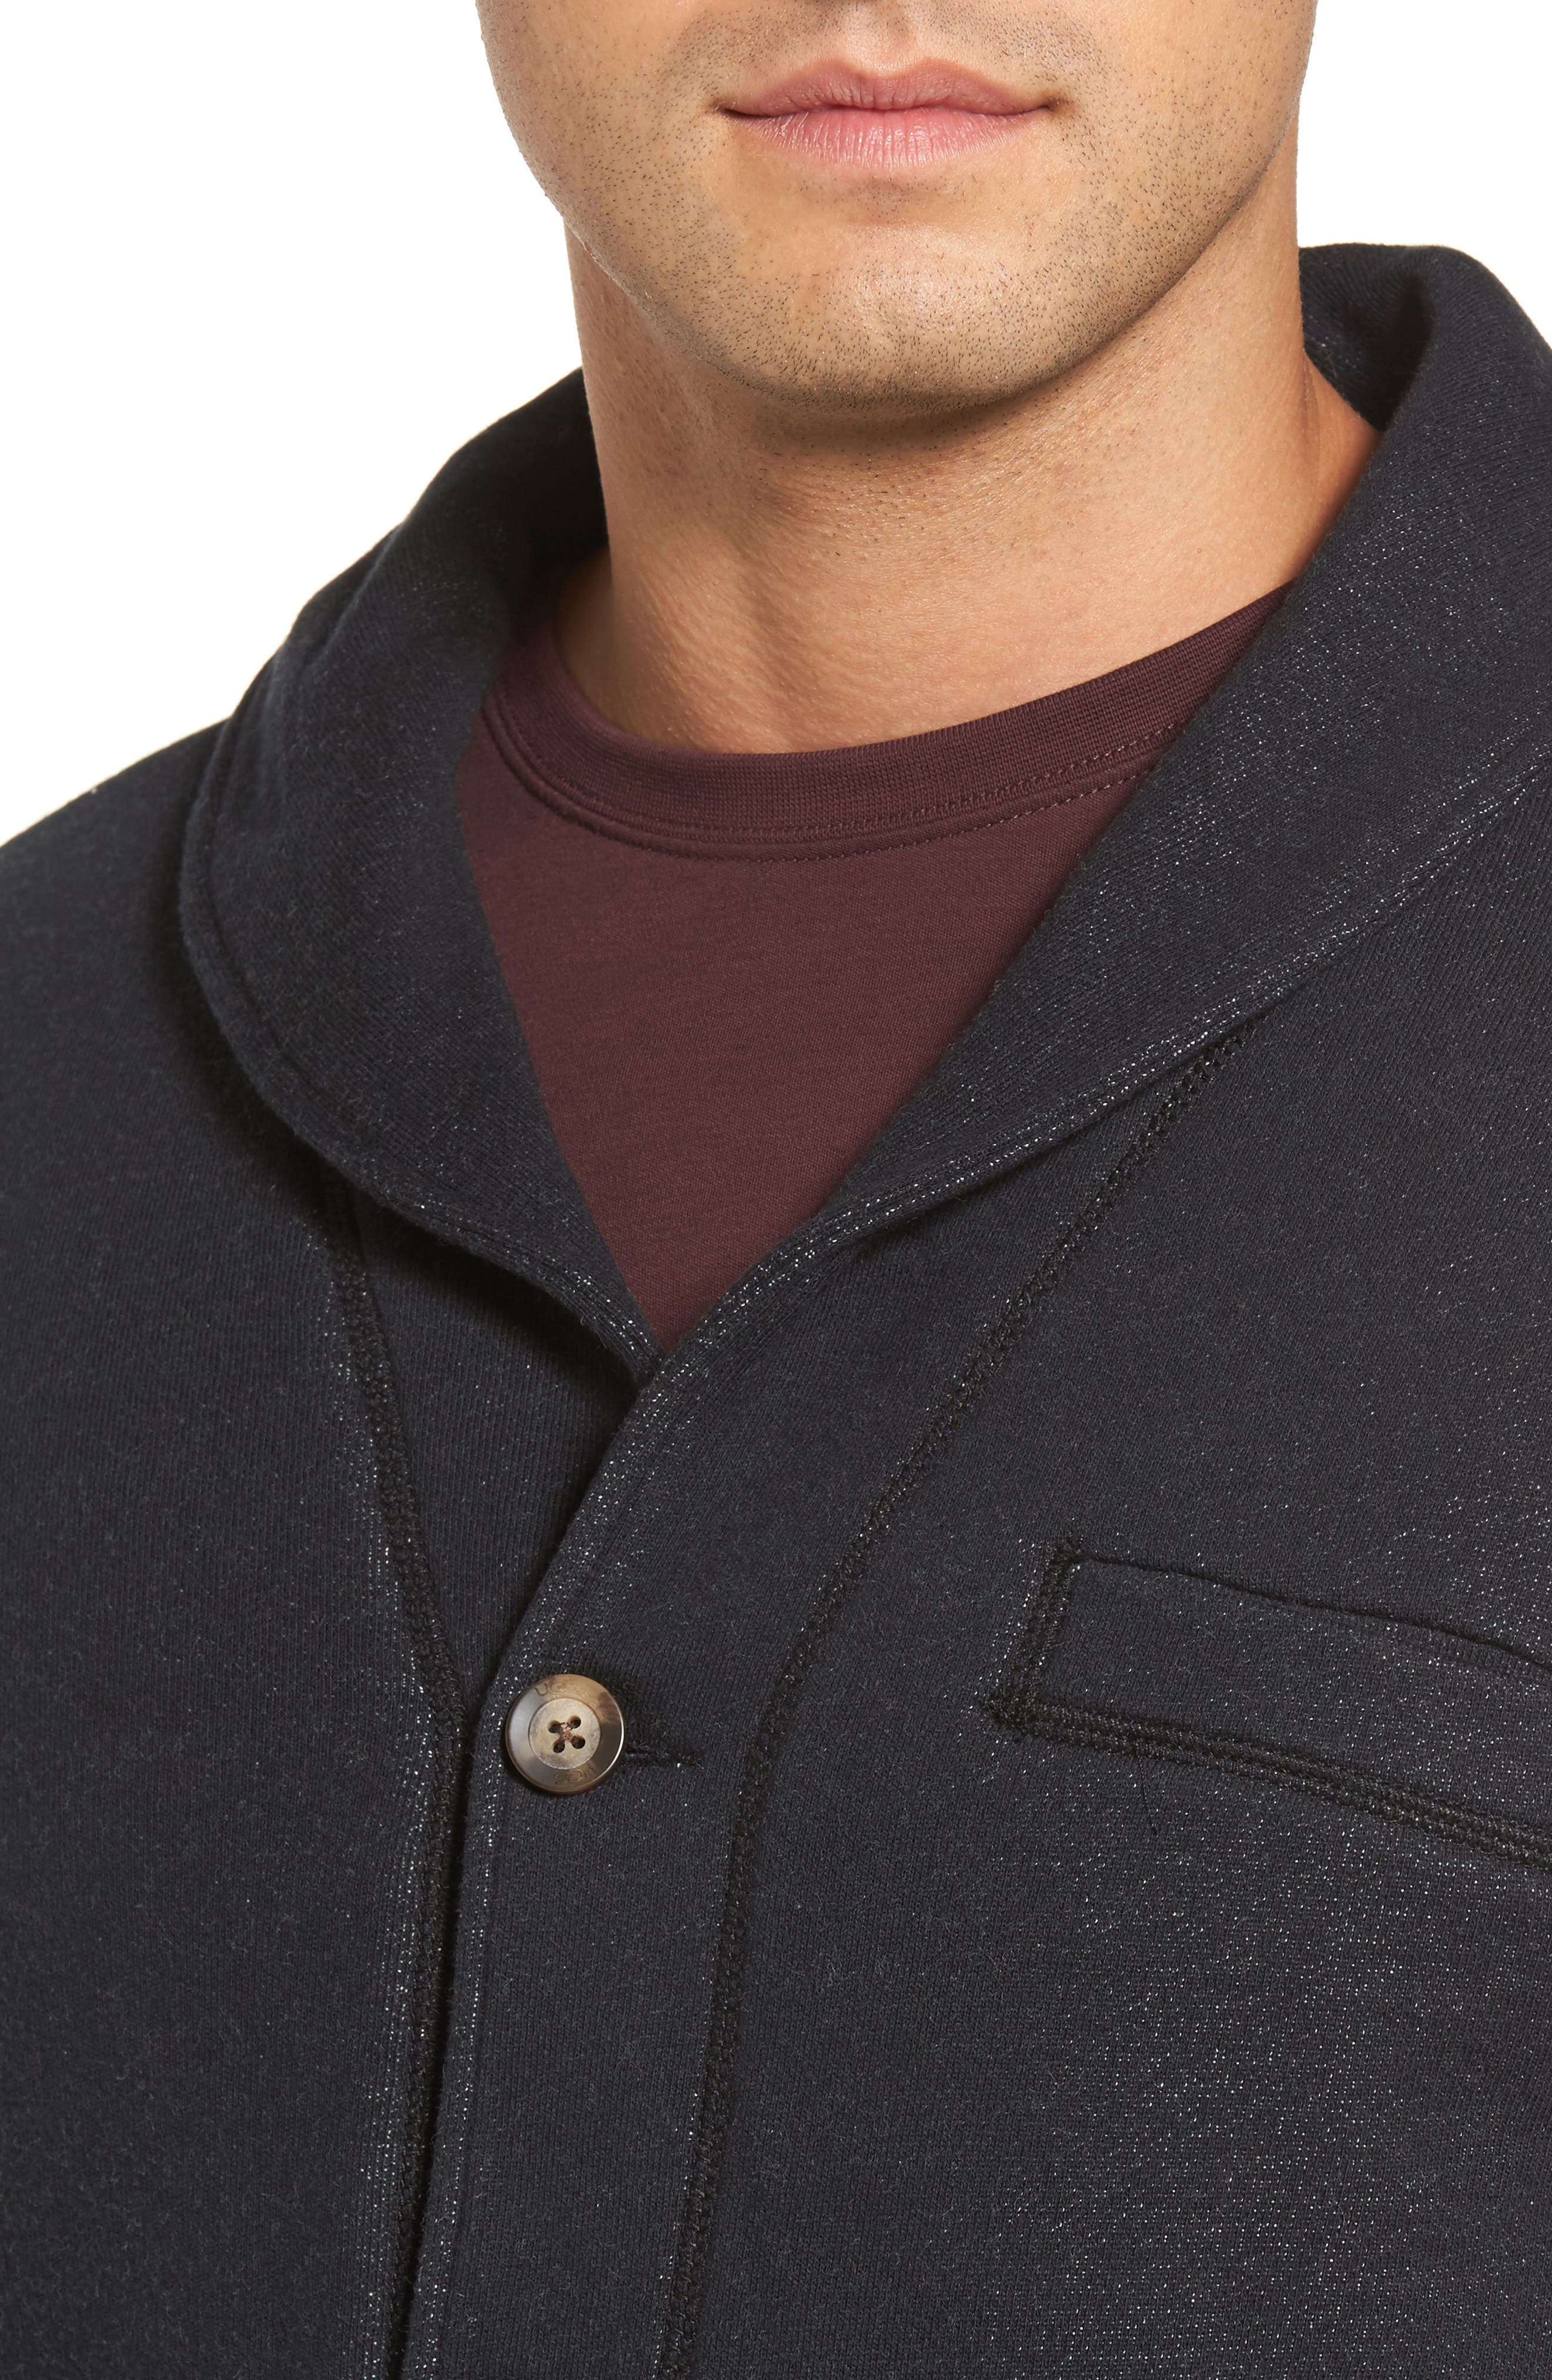 Faux Shearling Lined Shawl Collar Cardigan,                             Alternate thumbnail 4, color,                             Black